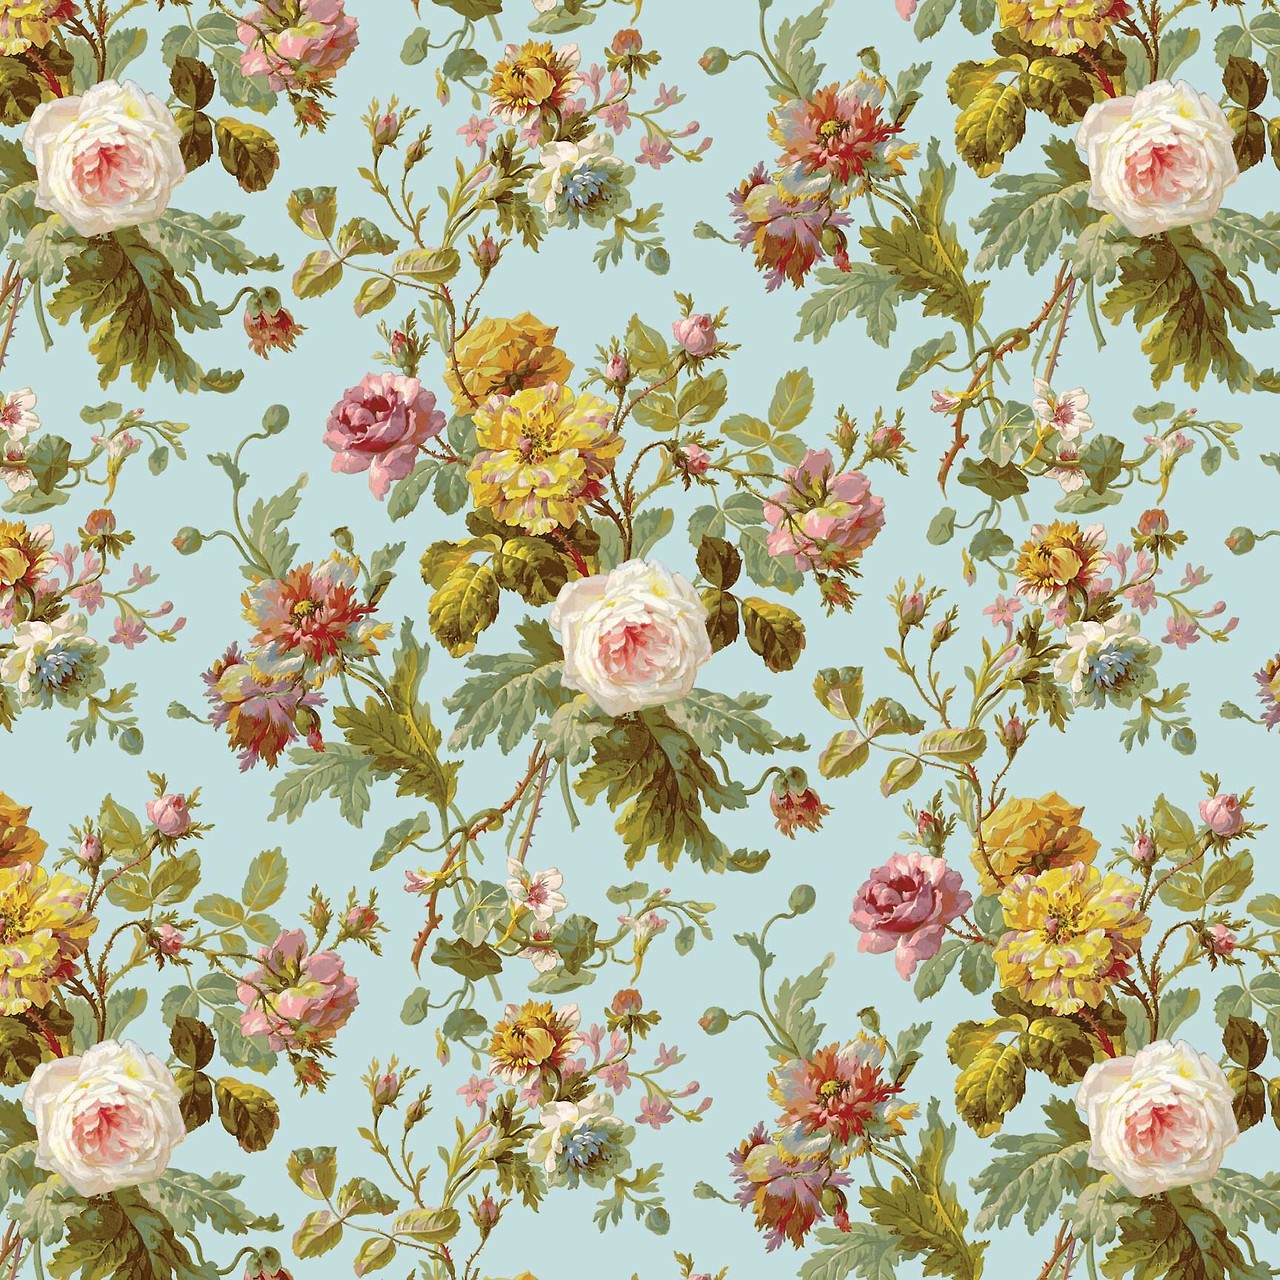 Free Download Vintage Floral Wallpaper Pattern Cool Hd Wallpapers